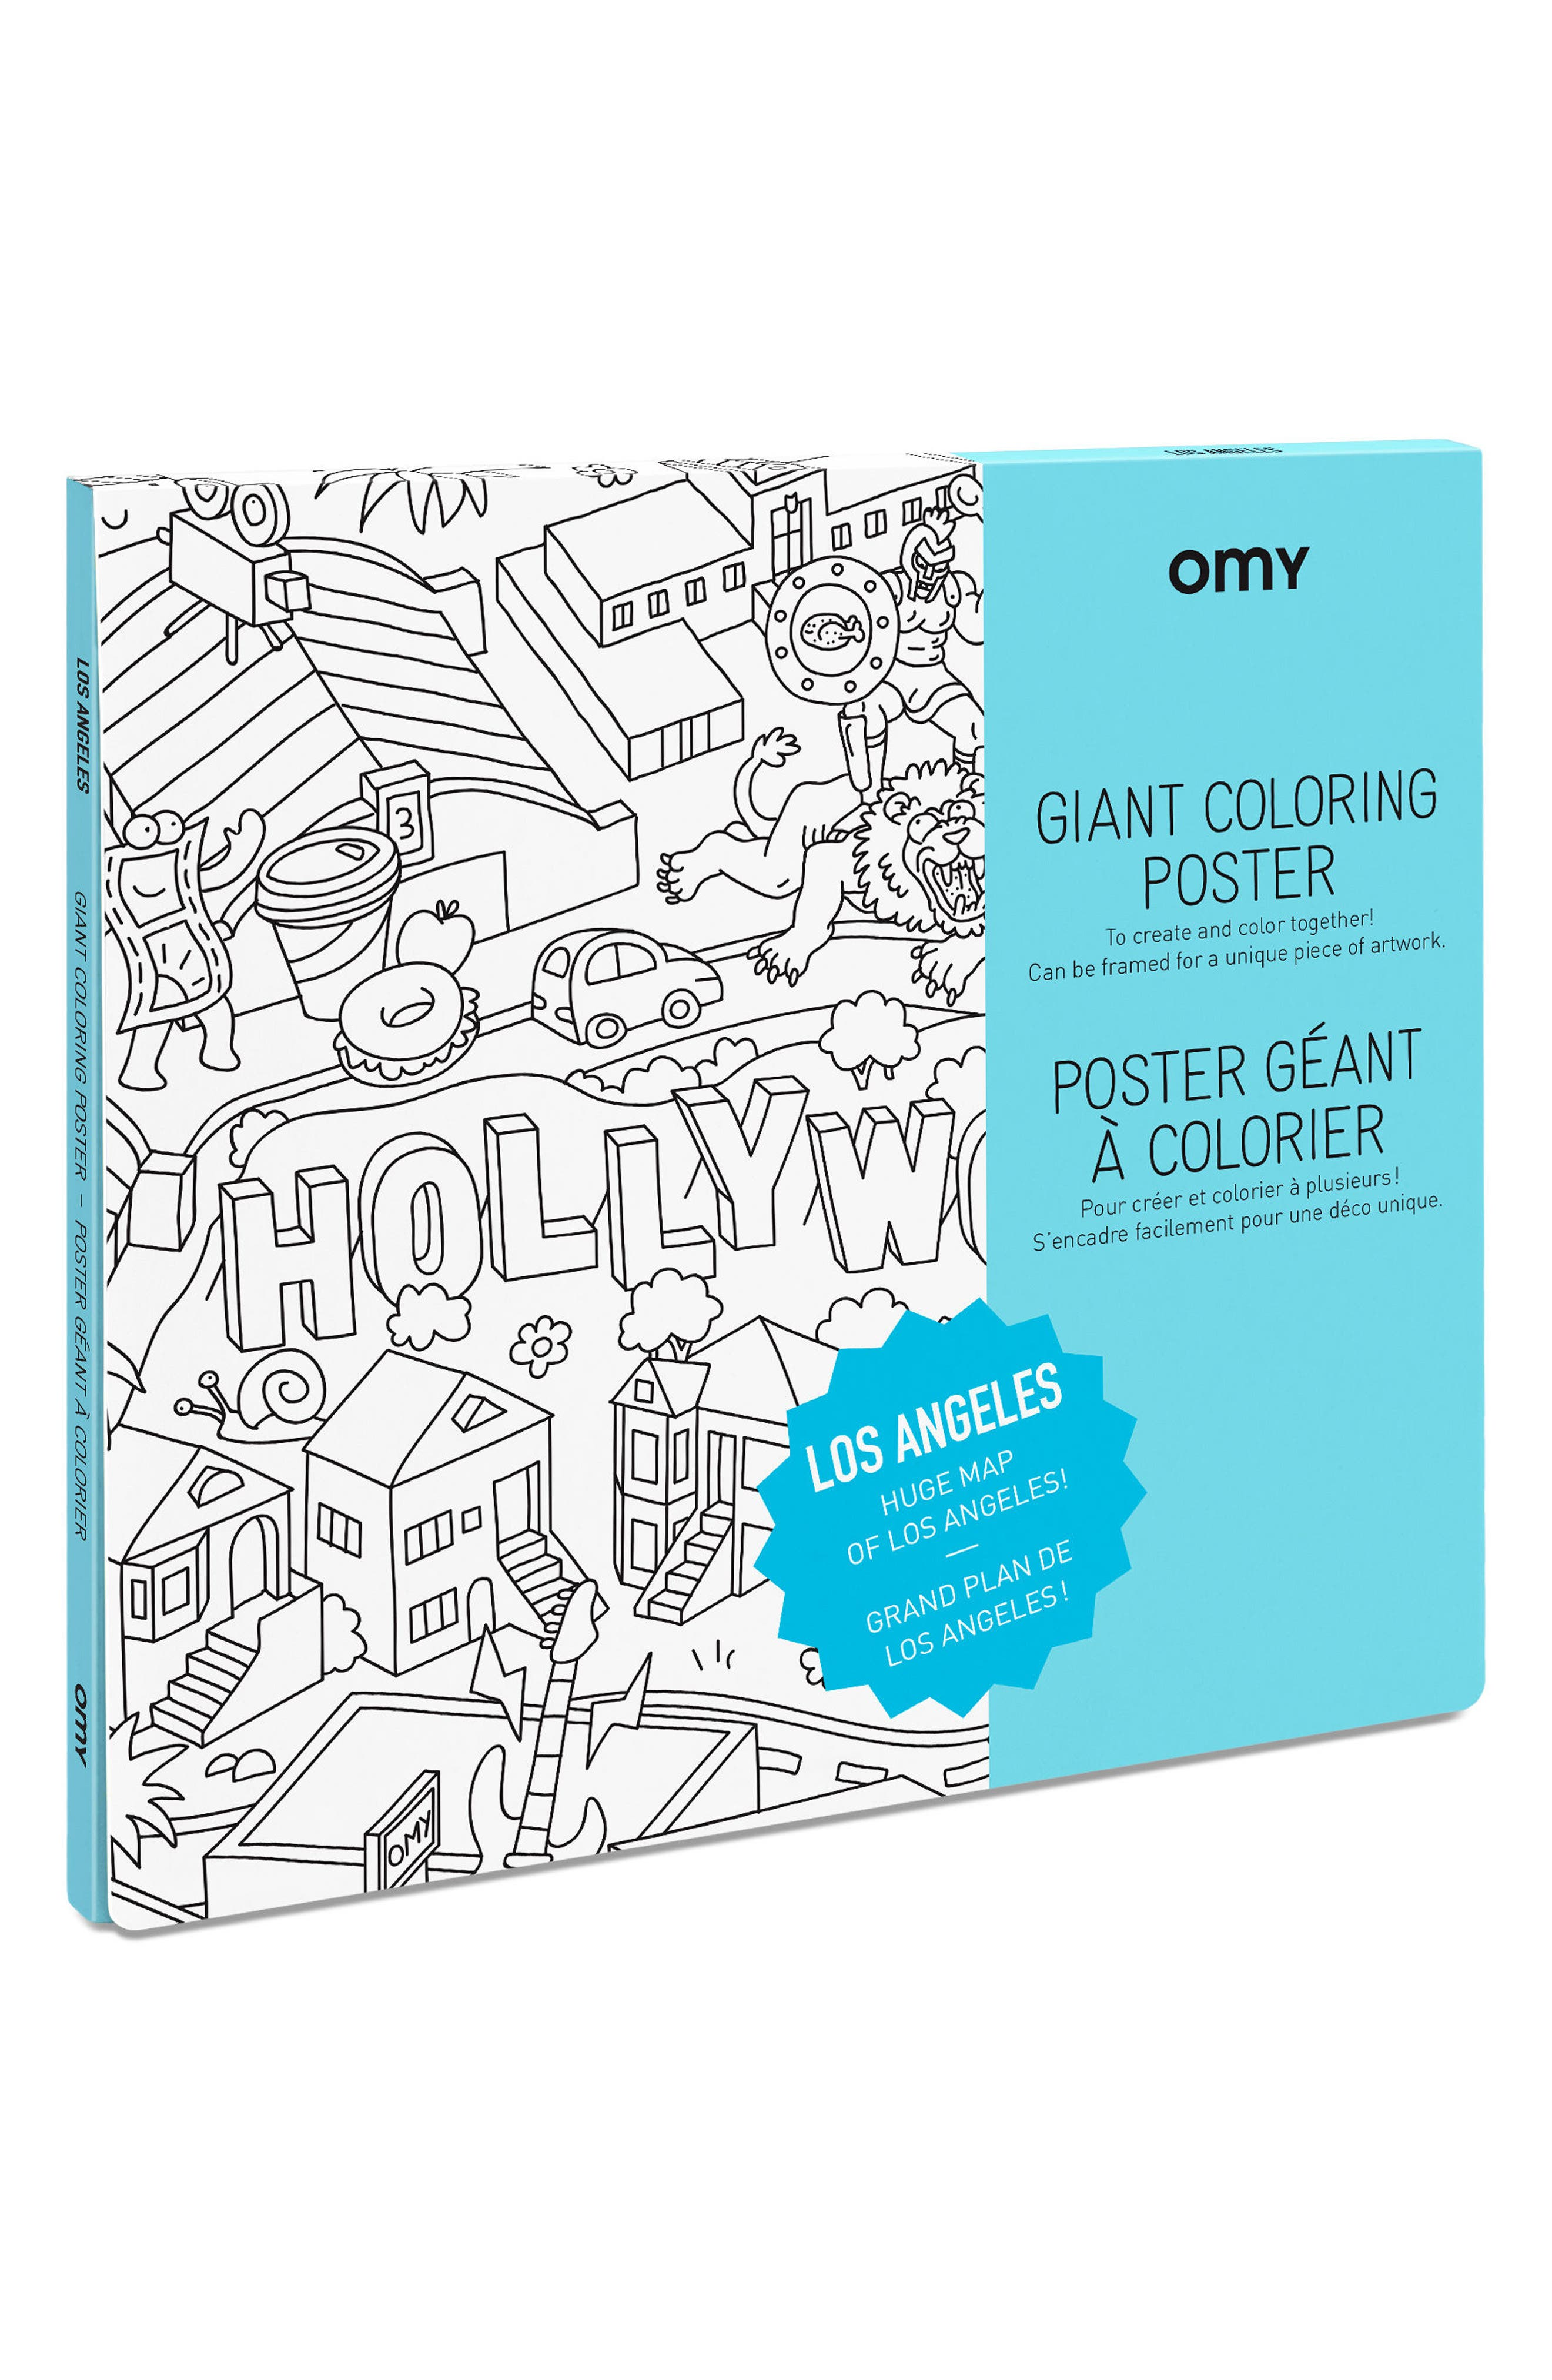 Los Angeles Giant Coloring Poster,                         Main,                         color, Los Angeles